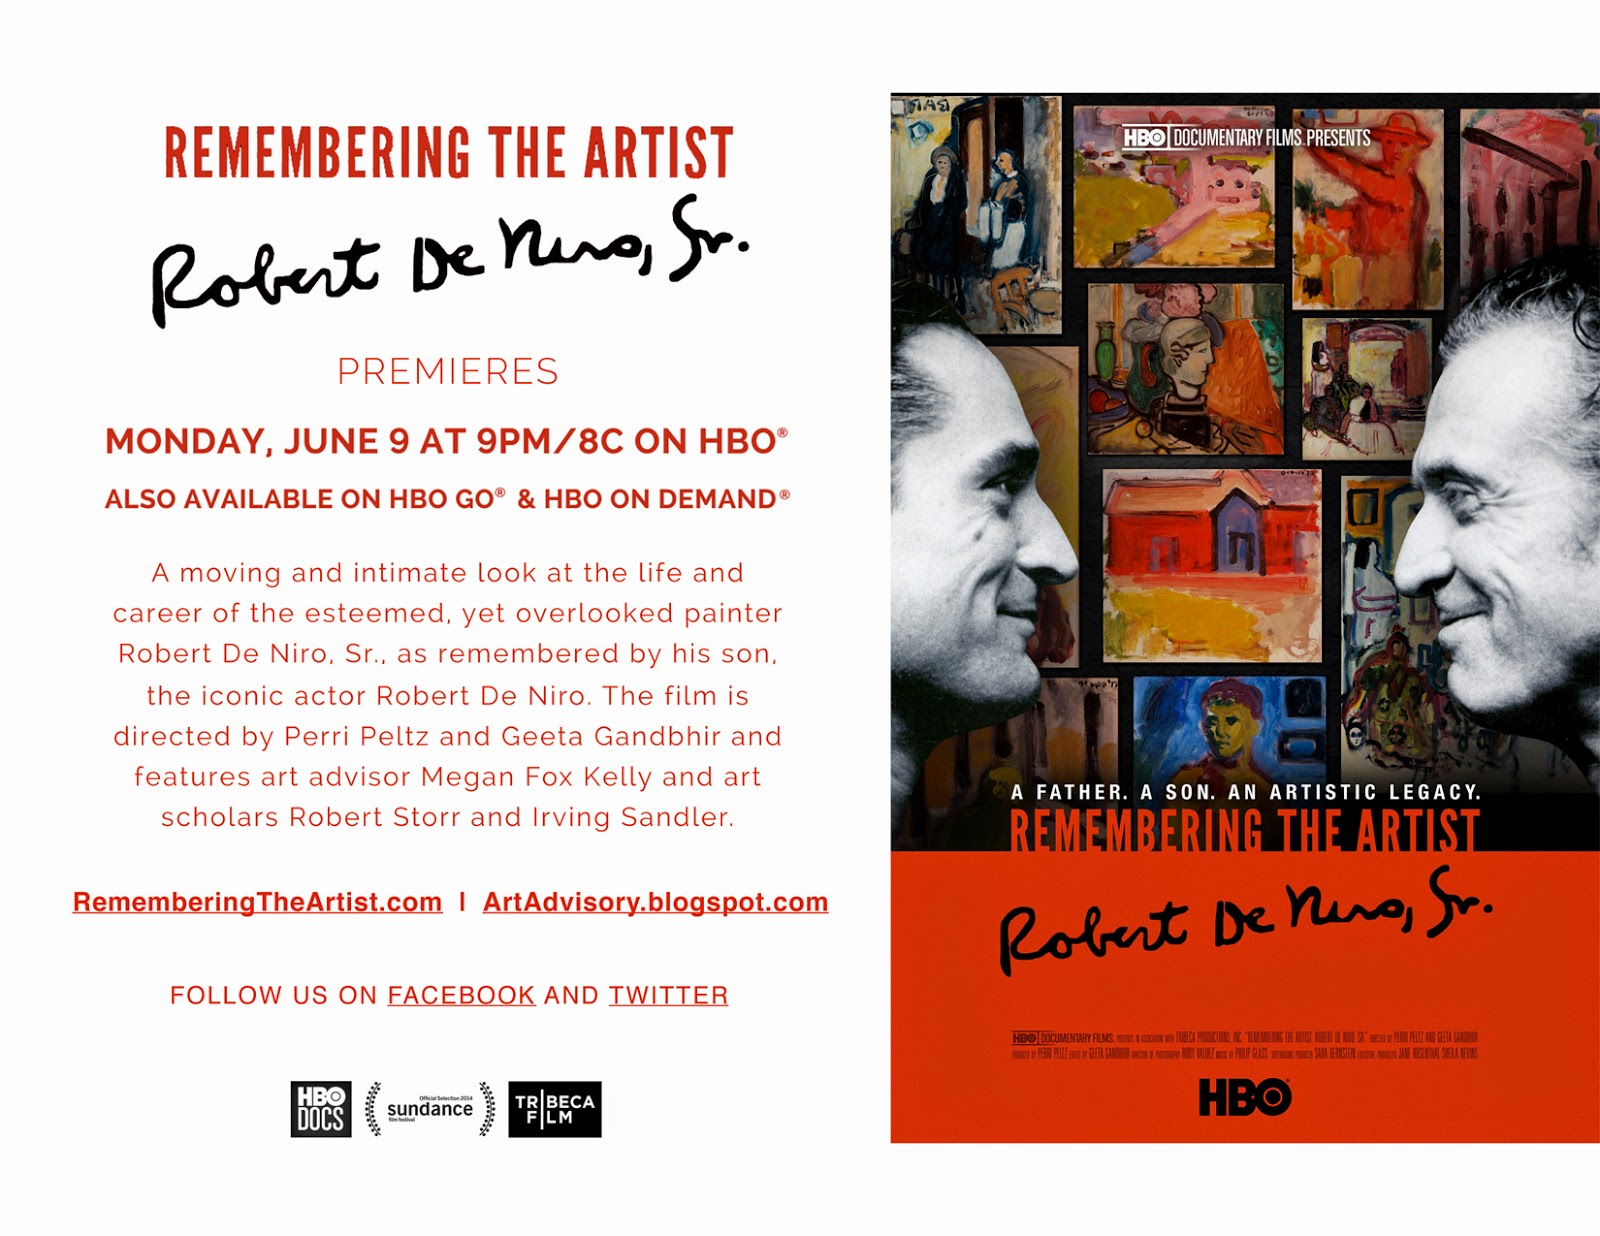 HBO hosted a premiere for the documentary   Remembering The Artist: Robert De Niro, Sr.  on June 5, 2014 at the Museum of Modern Art in New York, followed by a private opening reception and dinner at DC Moore Gallery in Chelsea, where De Niro Sr.'s paintings and drawings are on display and for sale.  The film will air on HBO on Monday, June 9, 2014 at 9pm.  The exhibition continues at  DC Moore Gallery , 535 West 22nd Street, NY through July 11, 2014.  Follow information about the film on  Facebook  and  Twitter .